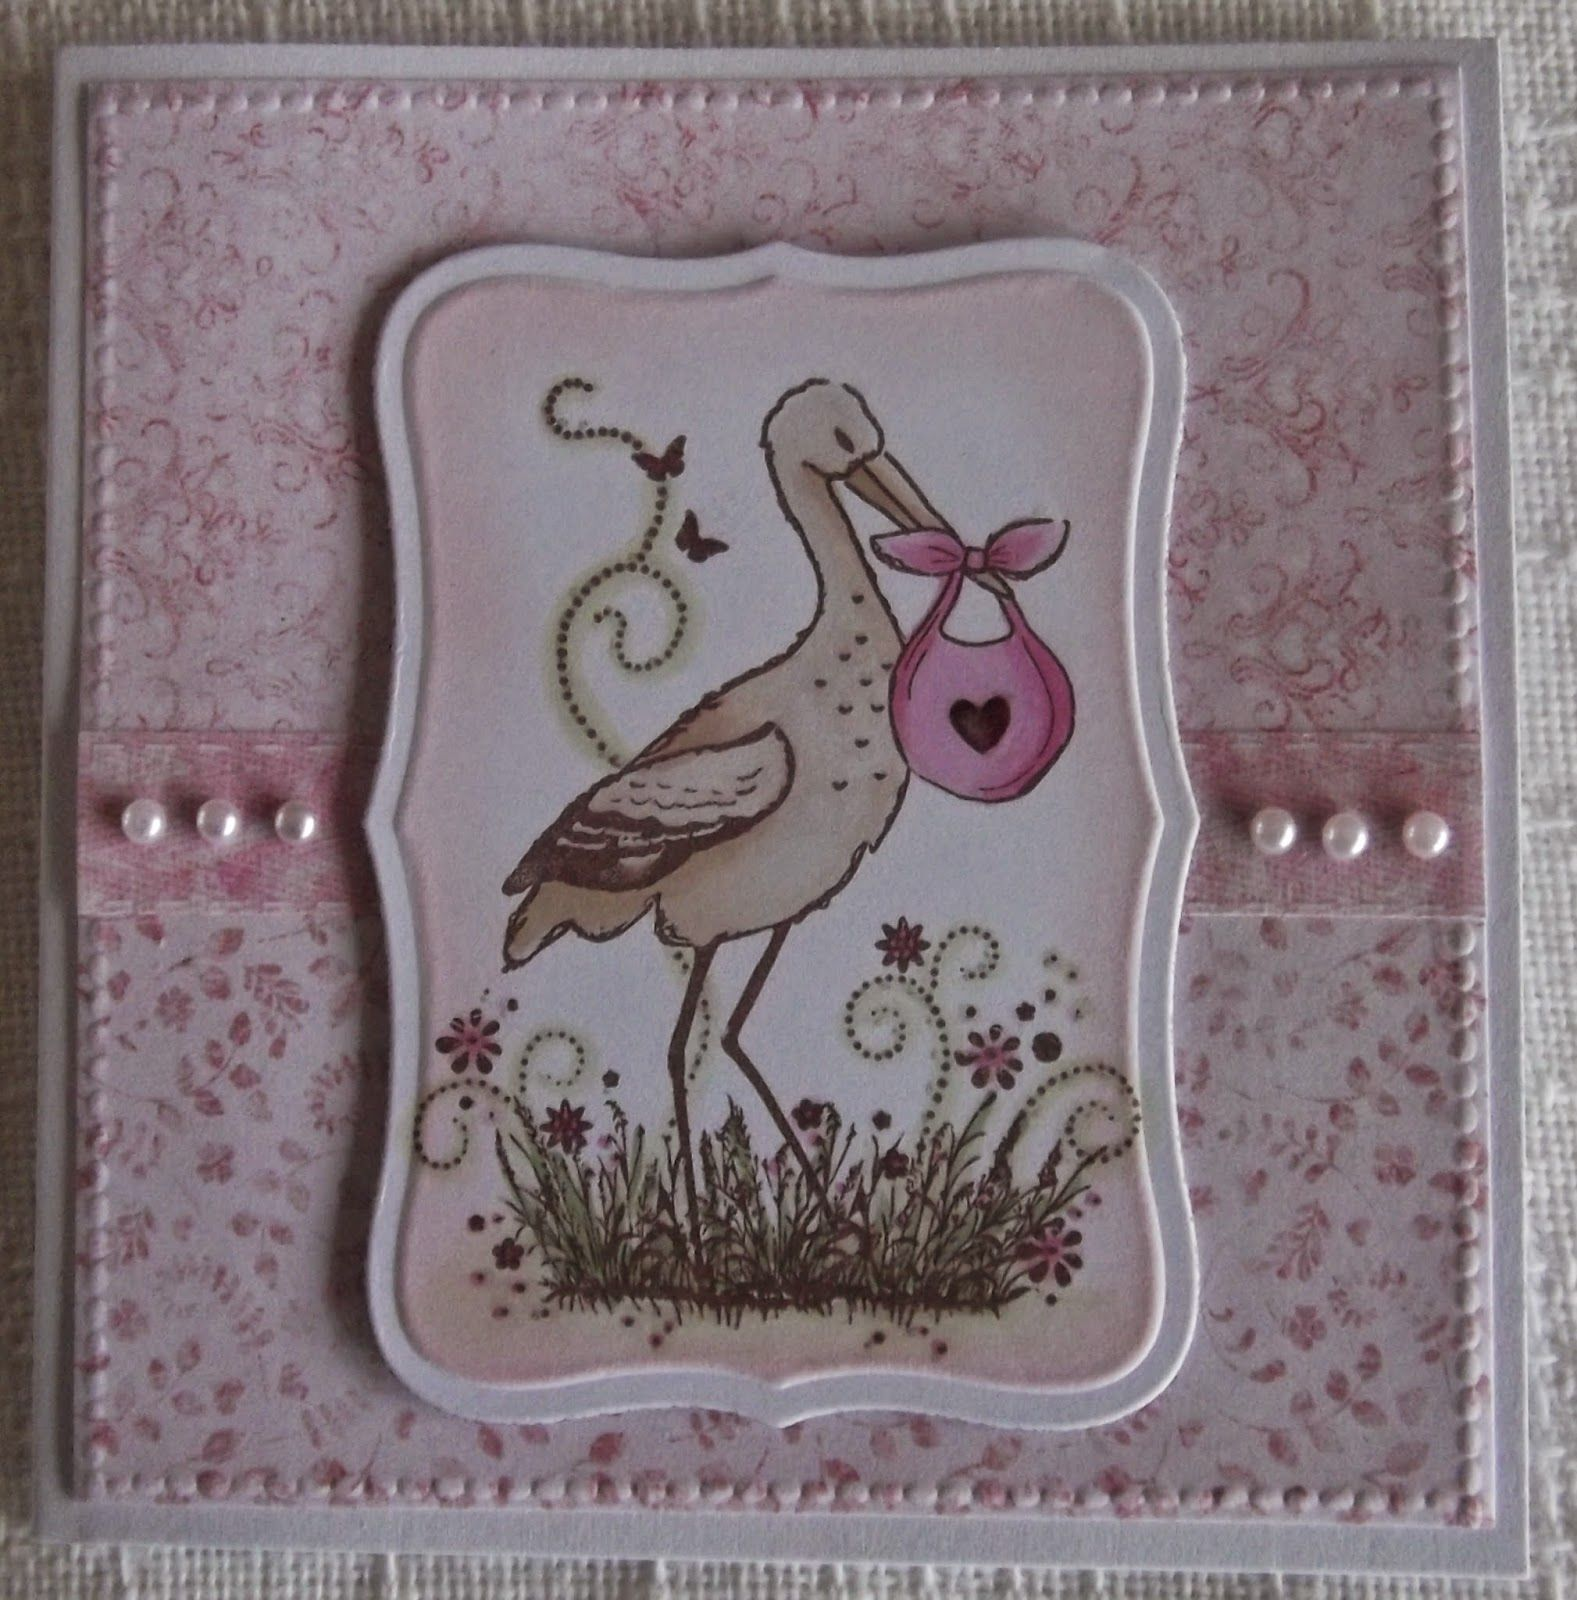 ink'n'rubba: Baby girl card with stamped image from My Paper World, papers by Nitwits.